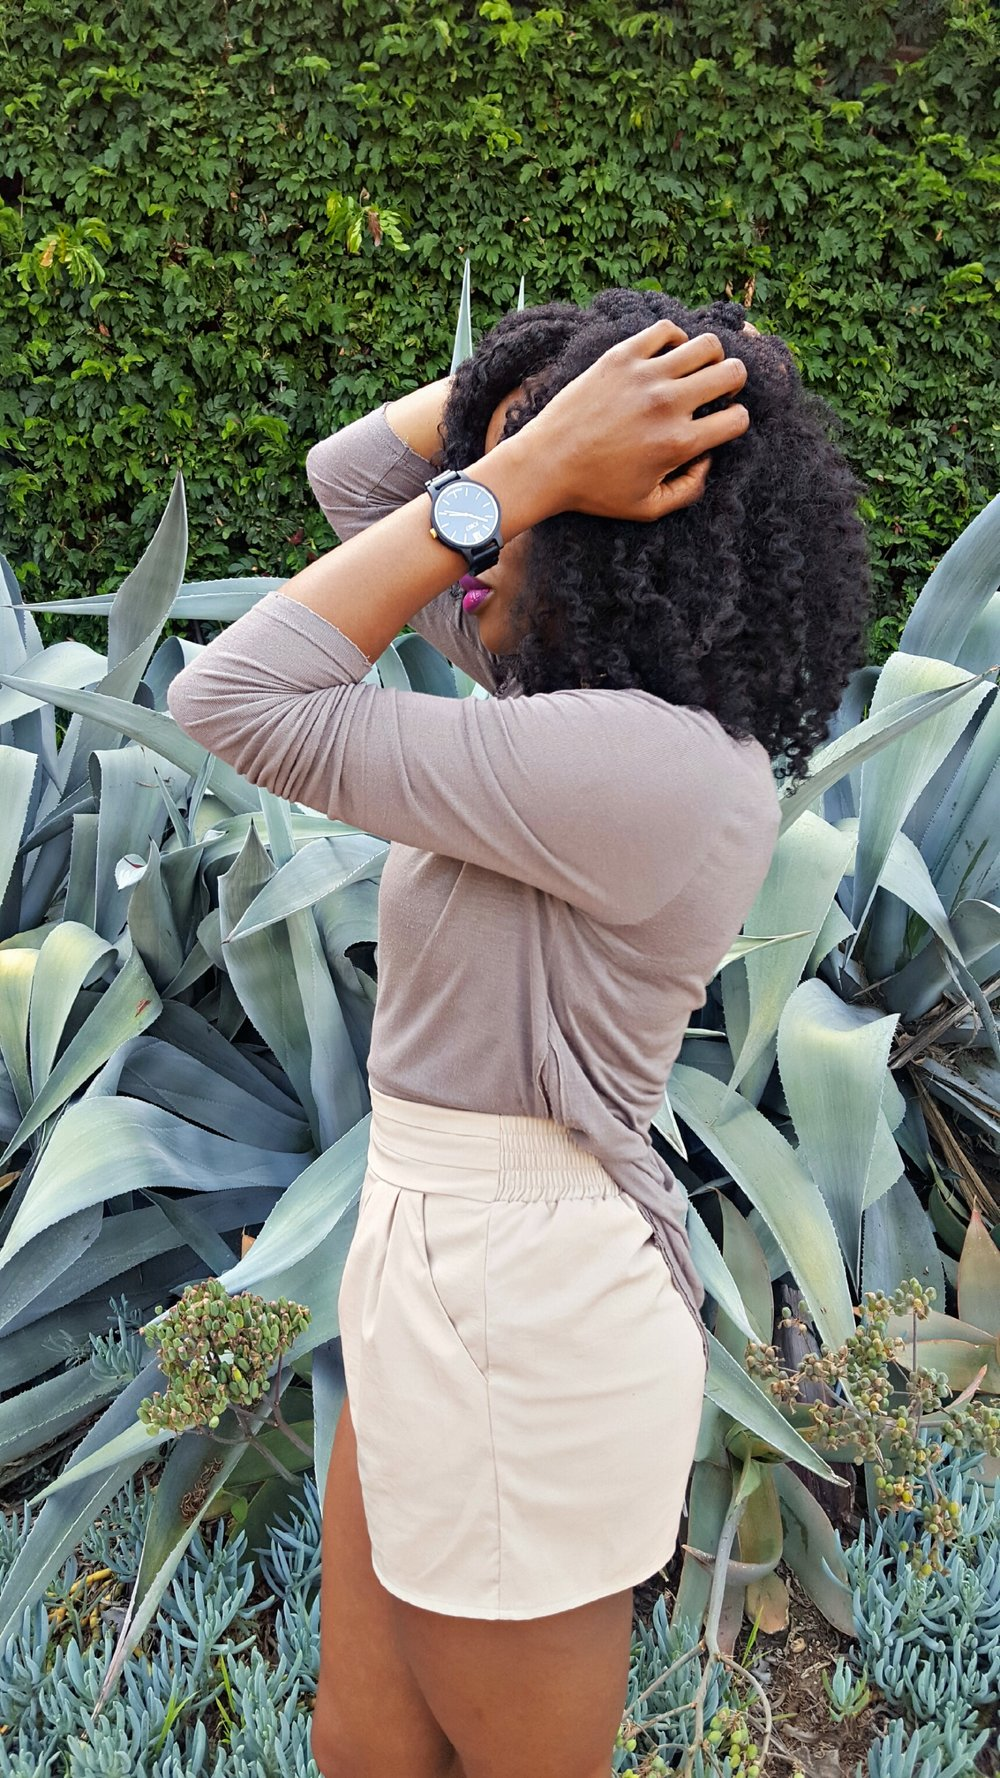 jord-ebony-and-gold-watch.jpg